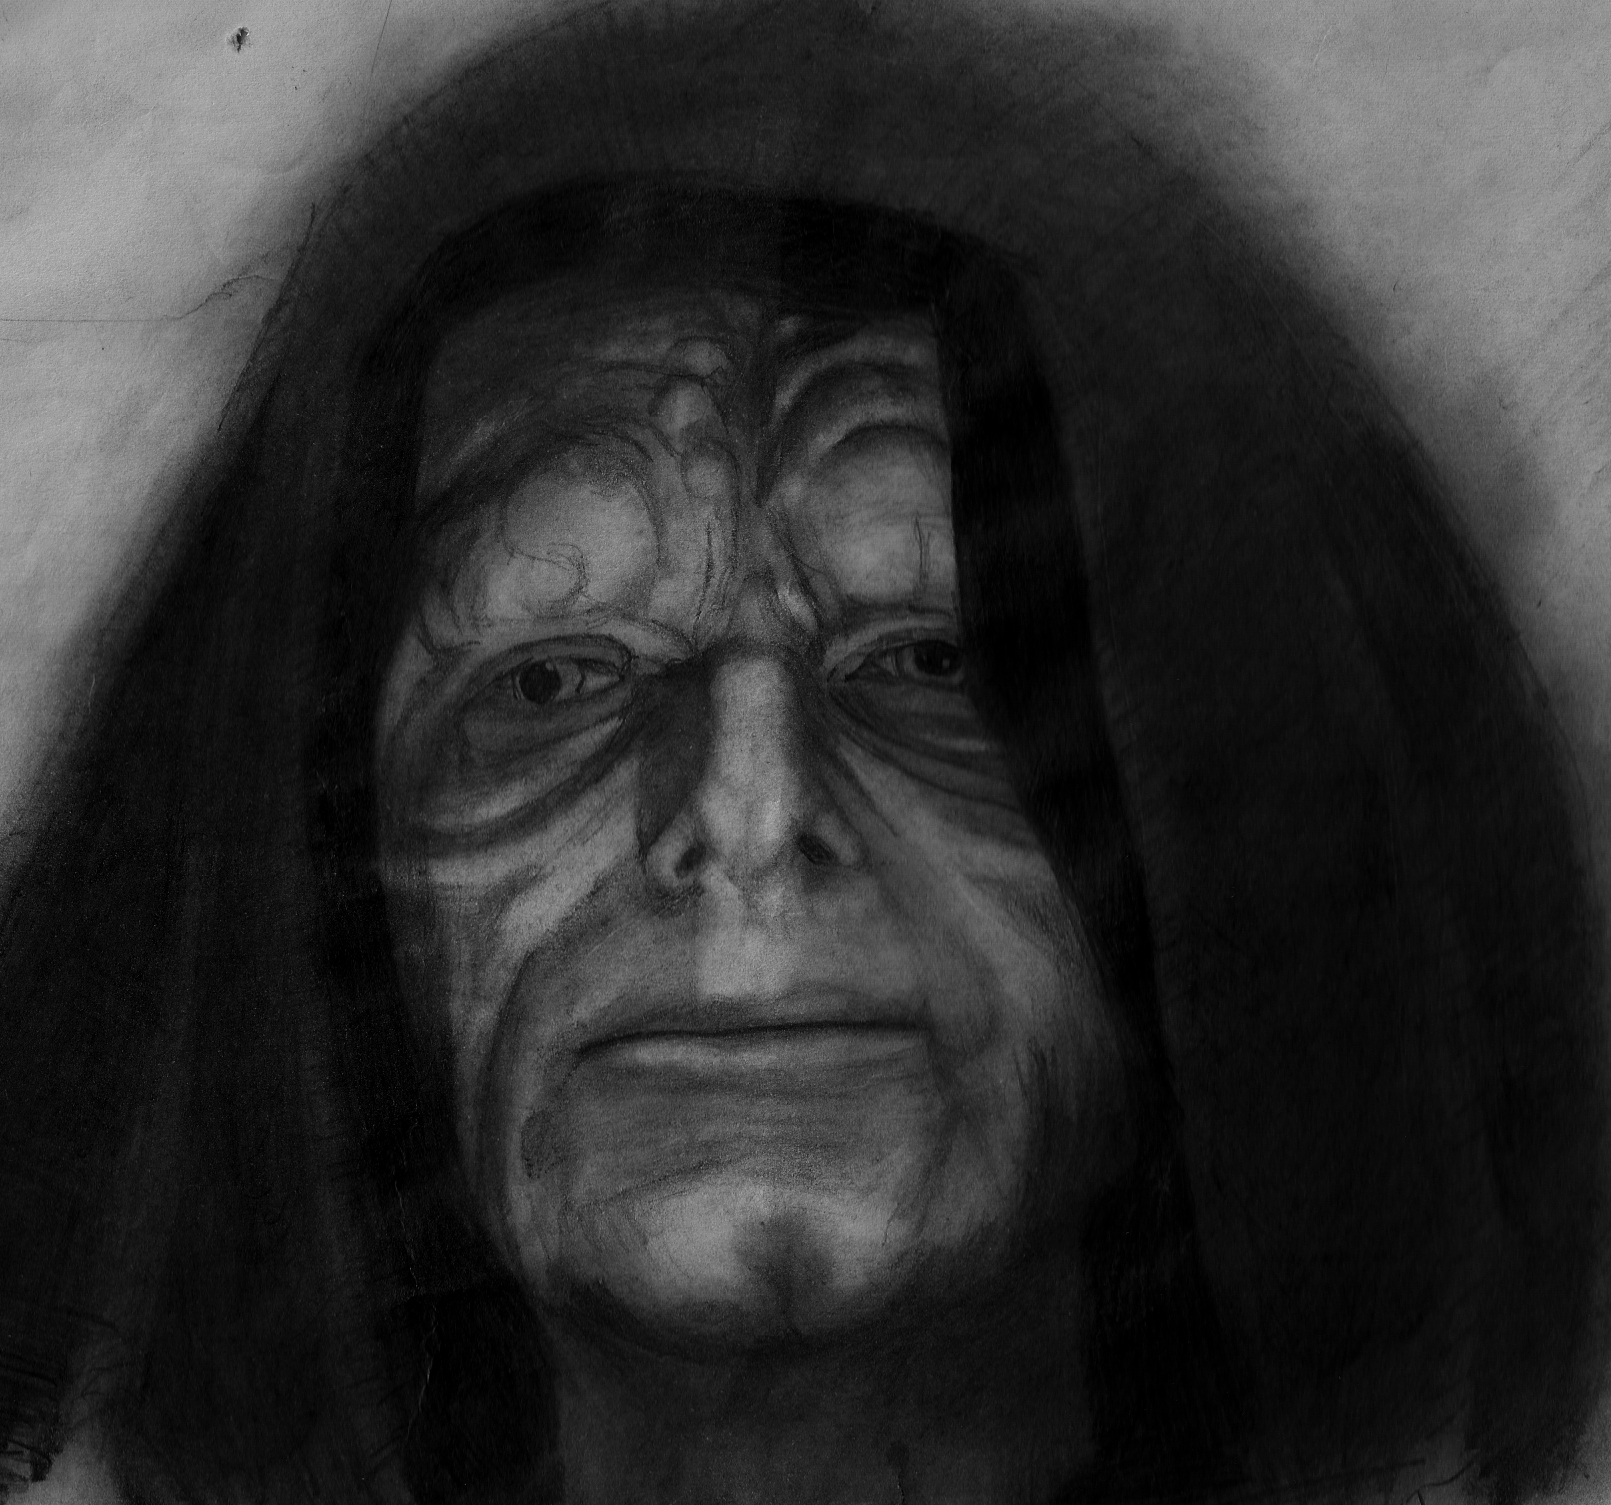 Sith Lord Emperor Palpatine